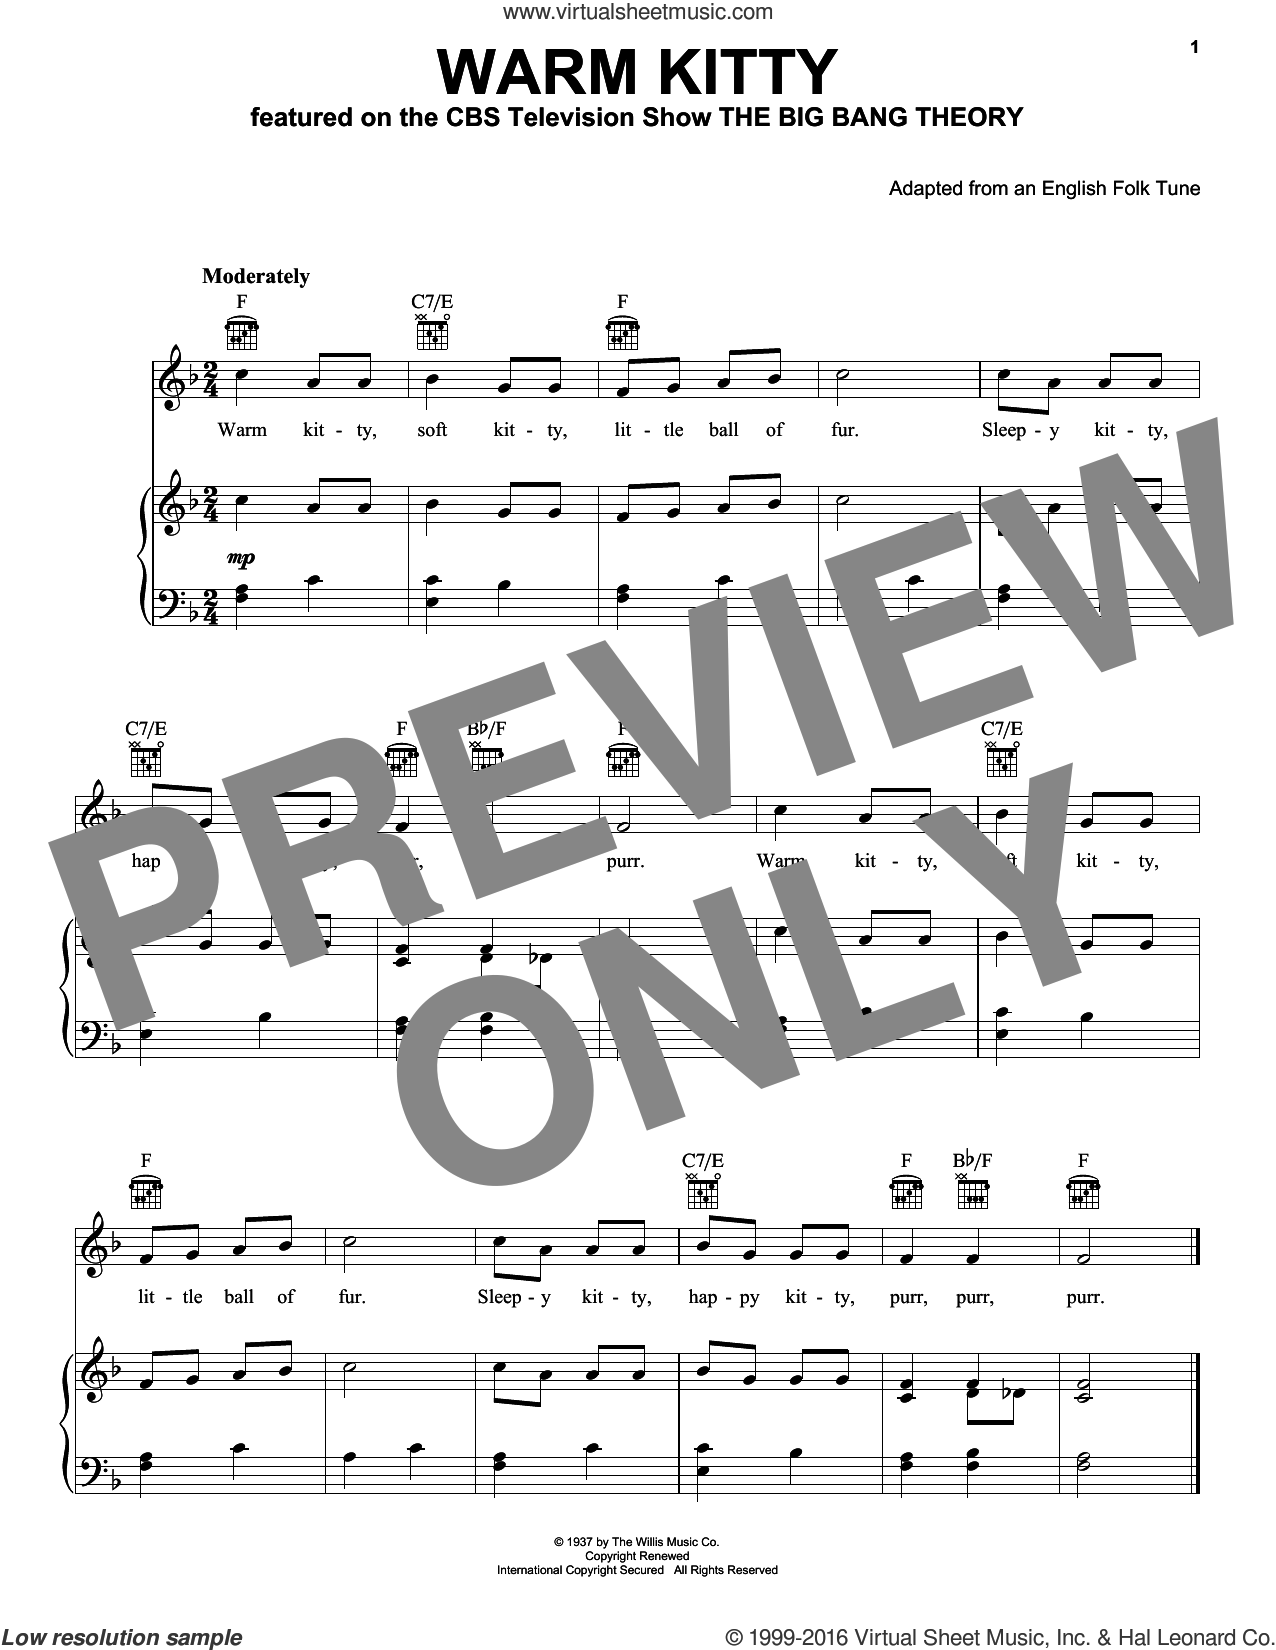 Warm Kitty sheet music for voice, piano or guitar by English Folk Tune (adapted), intermediate voice, piano or guitar. Score Image Preview.